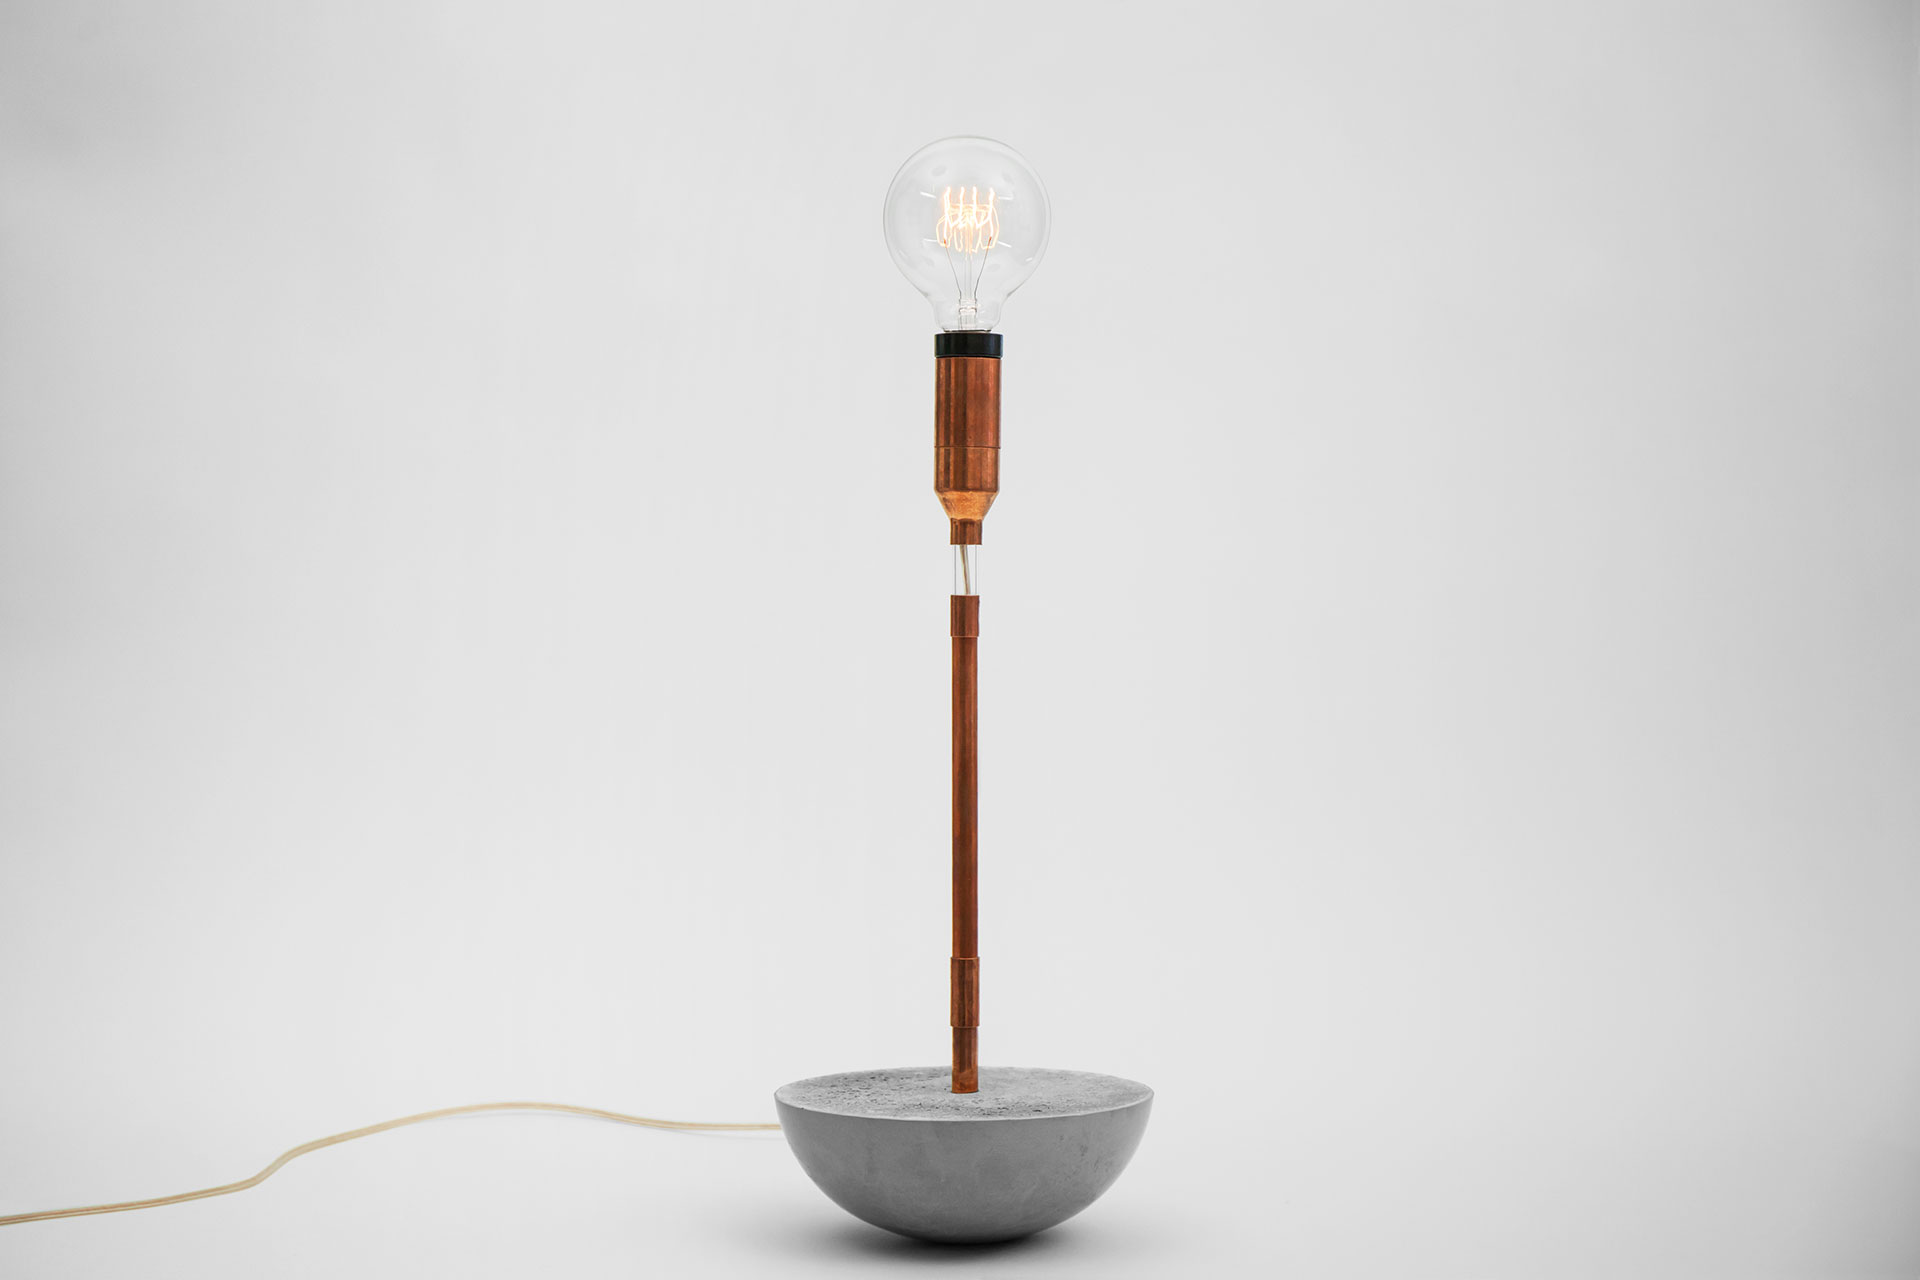 Cool desk lamp made of concrete and copper with magic touch dimmer and vintage Edison bulb